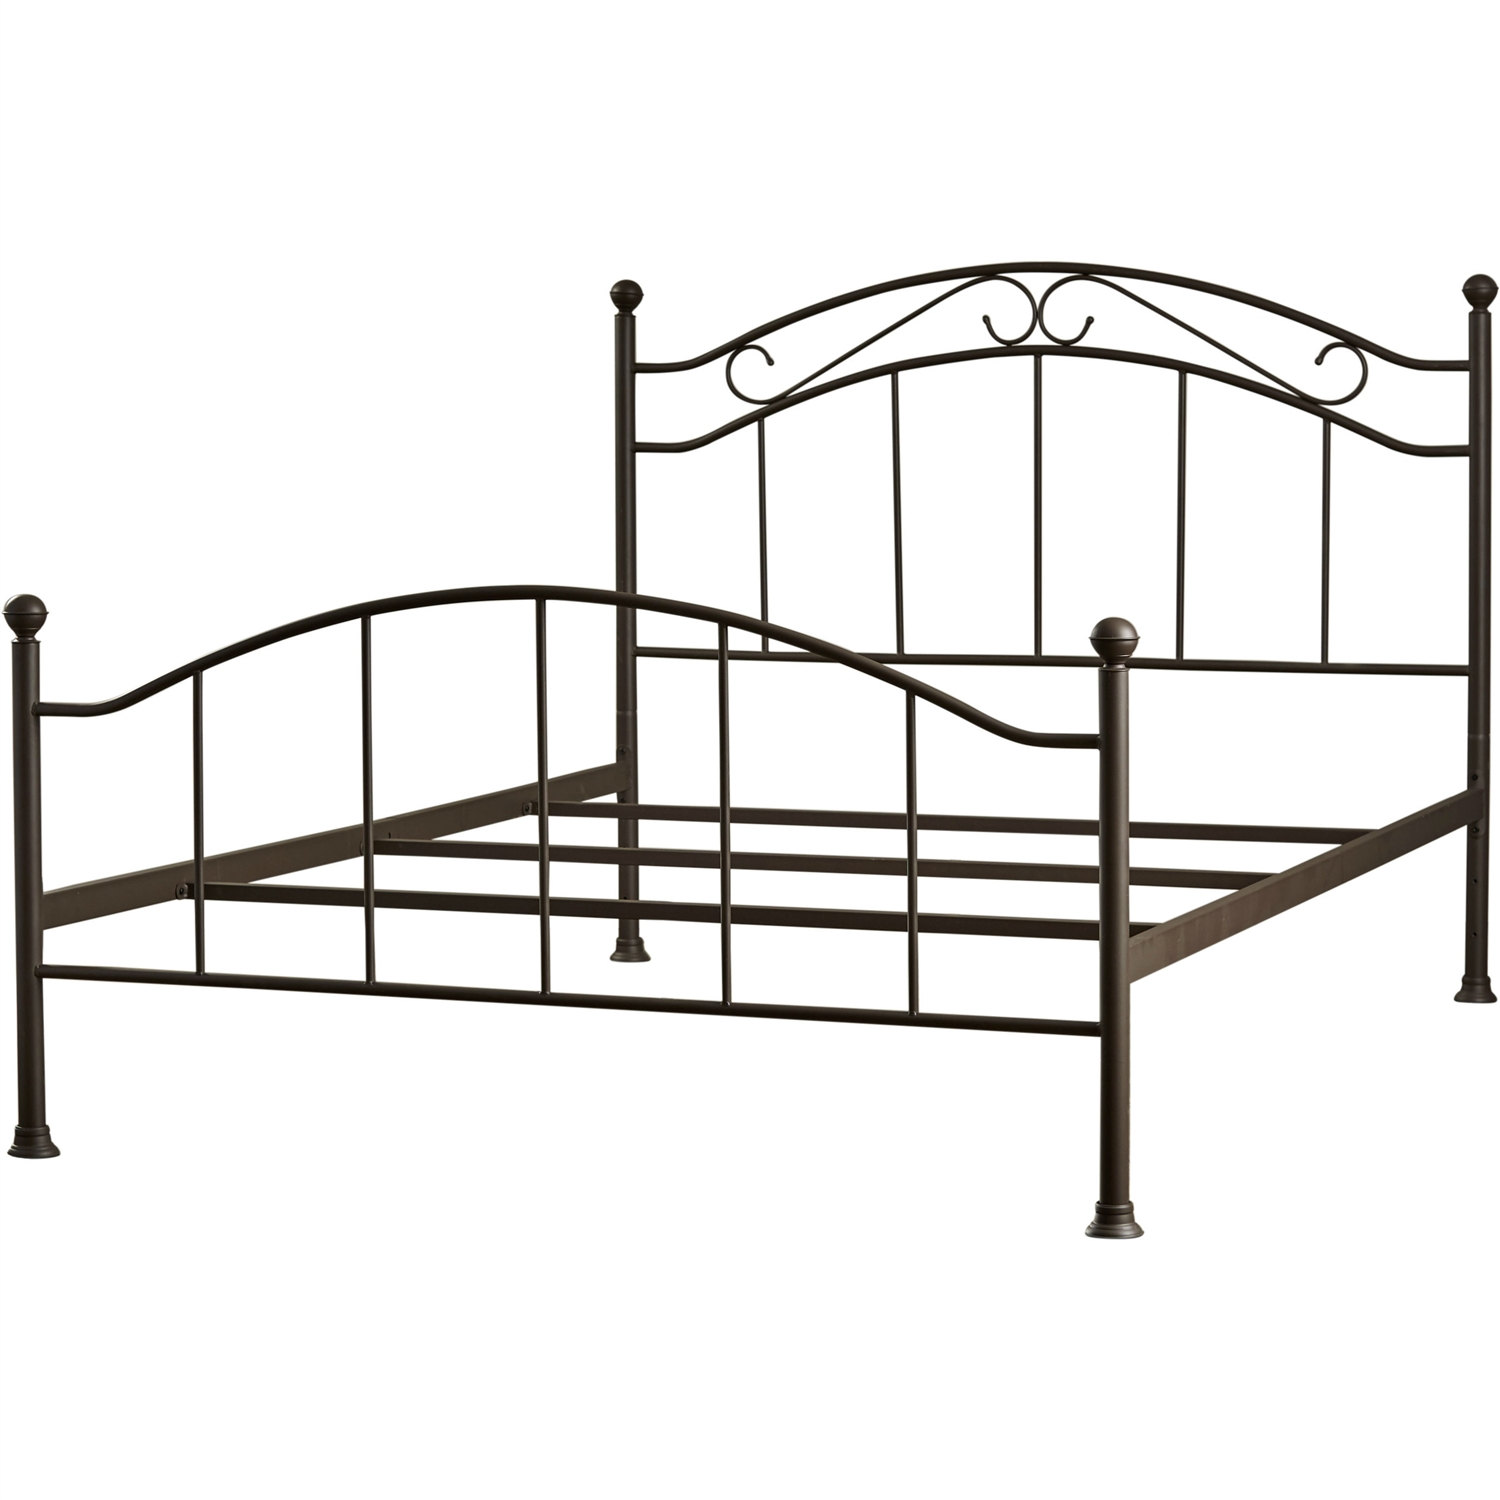 queen size scroll design metal bed frame with headboard and footboard in brown finish - Black Metal Bed Frame Queen